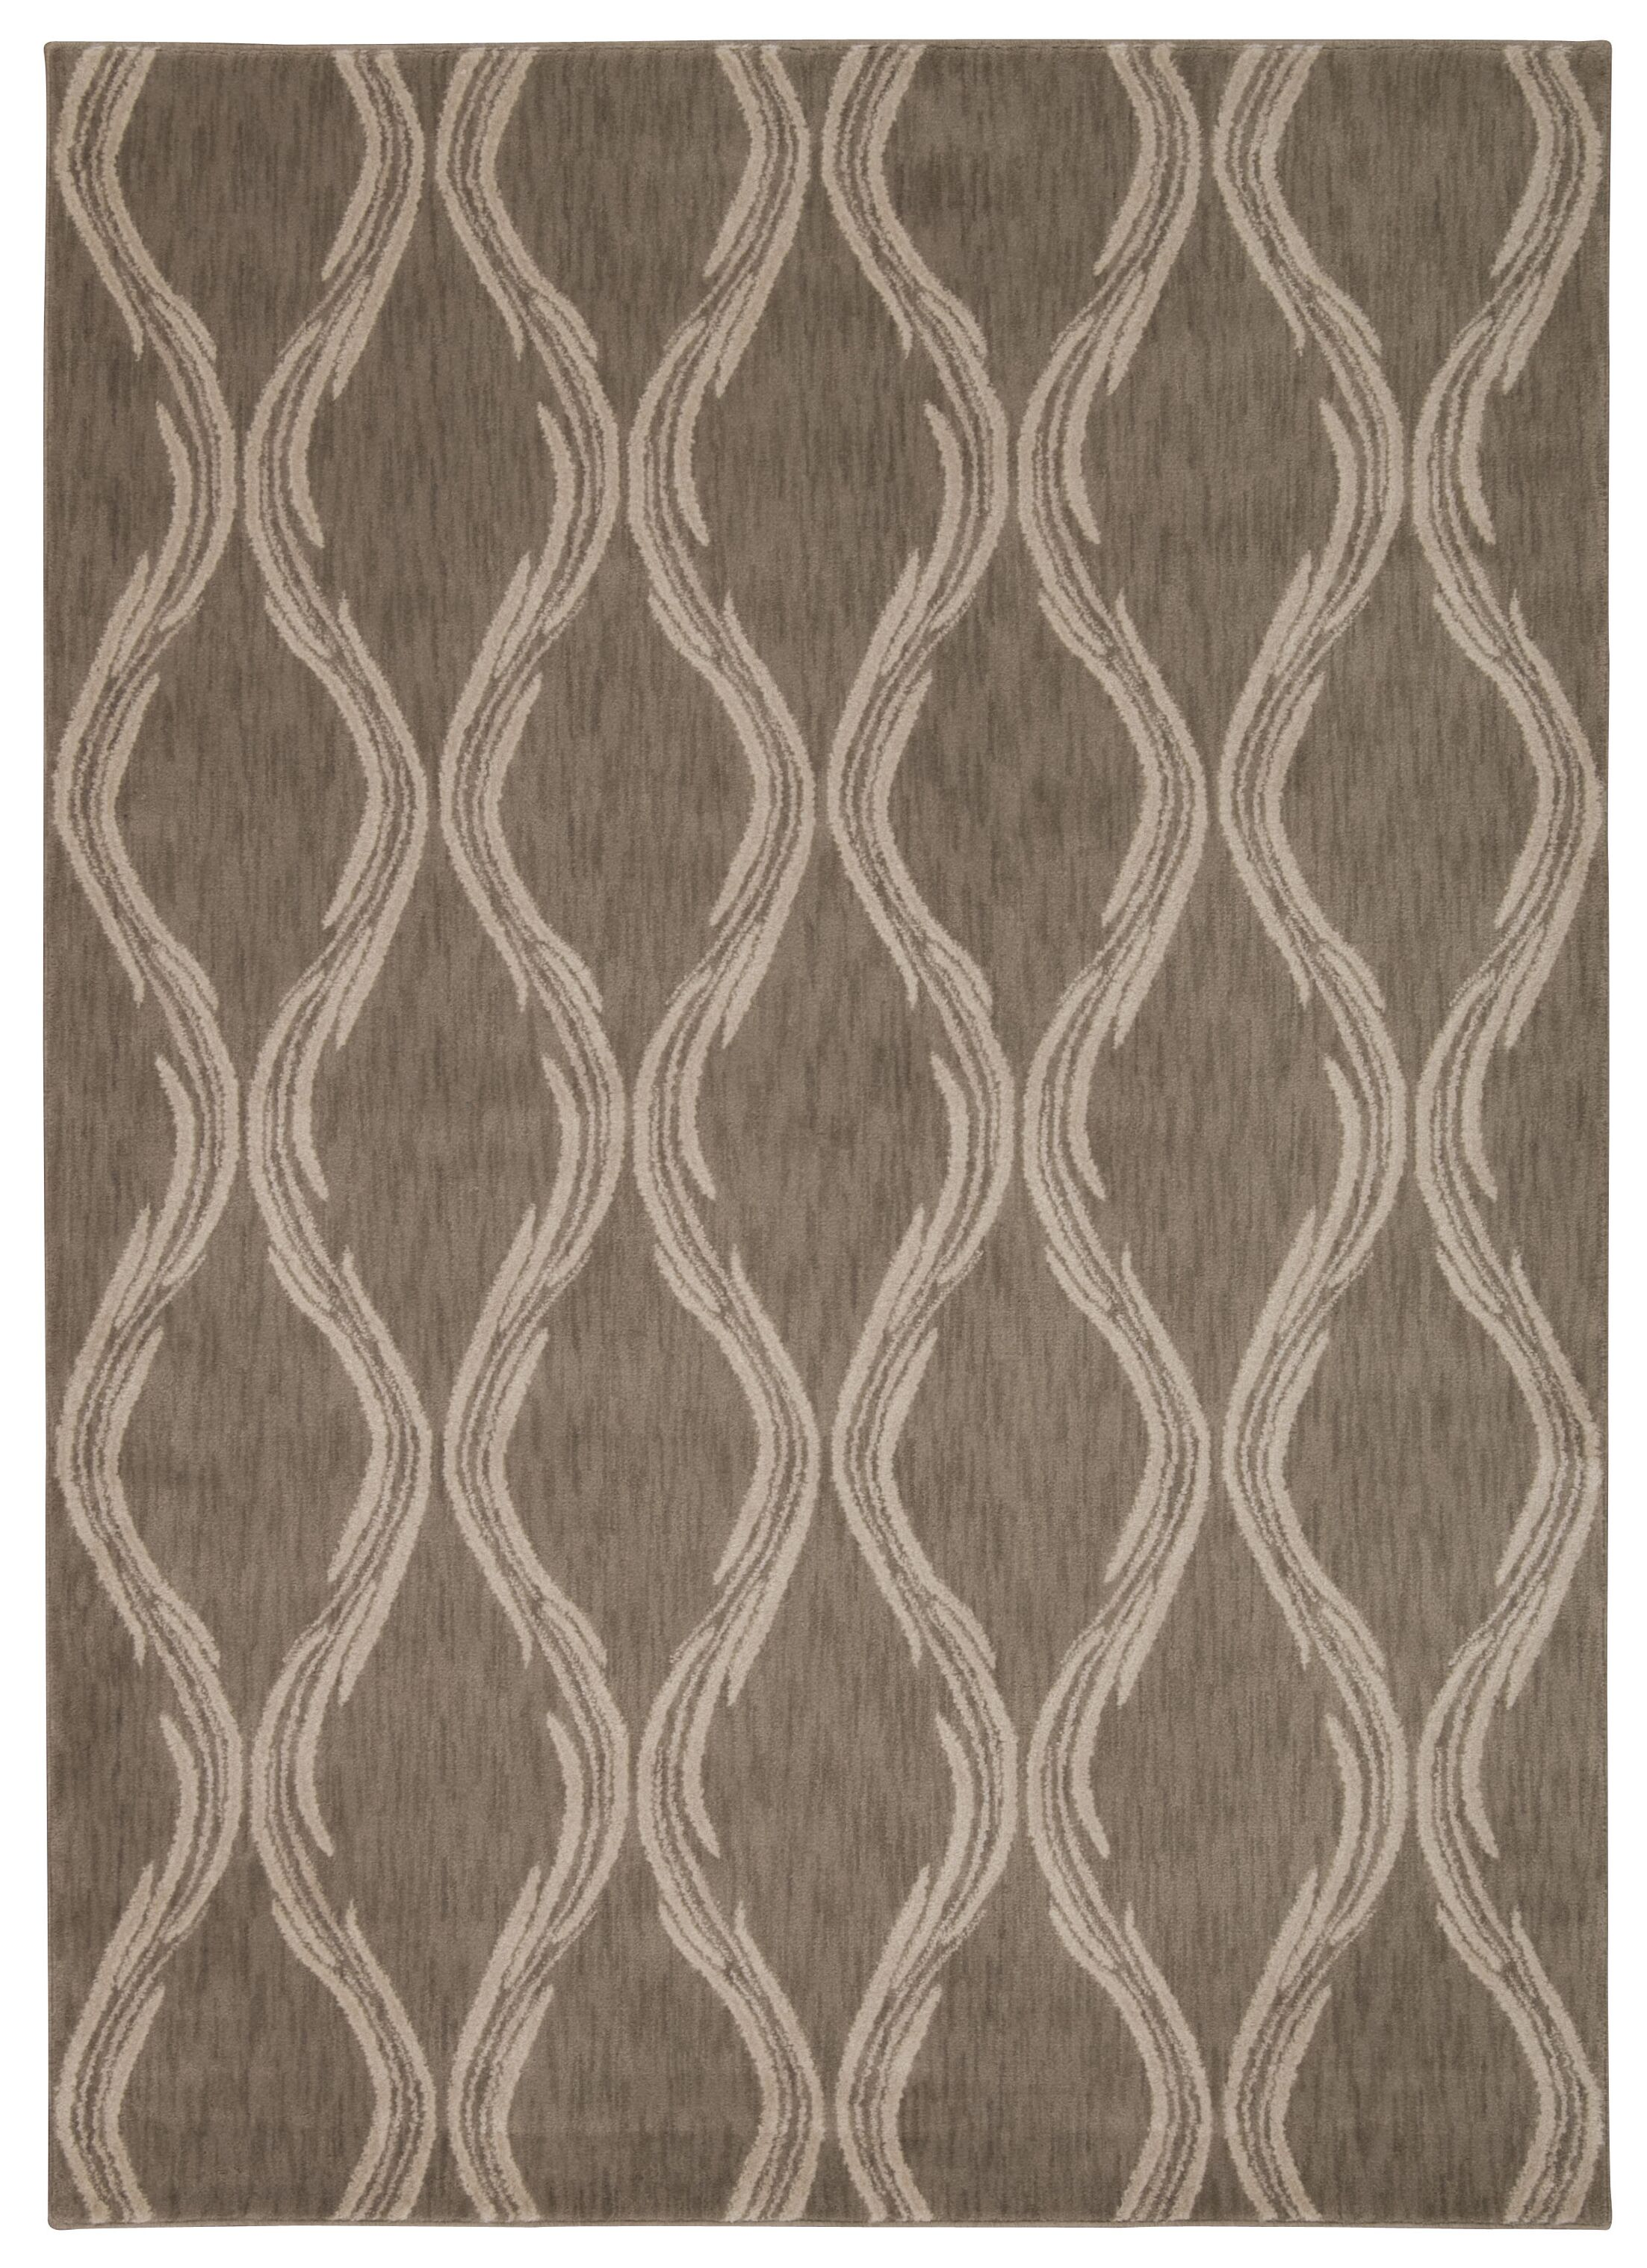 Galsworthy Taupe Area Rug Rug Size: Rectangle 7'9